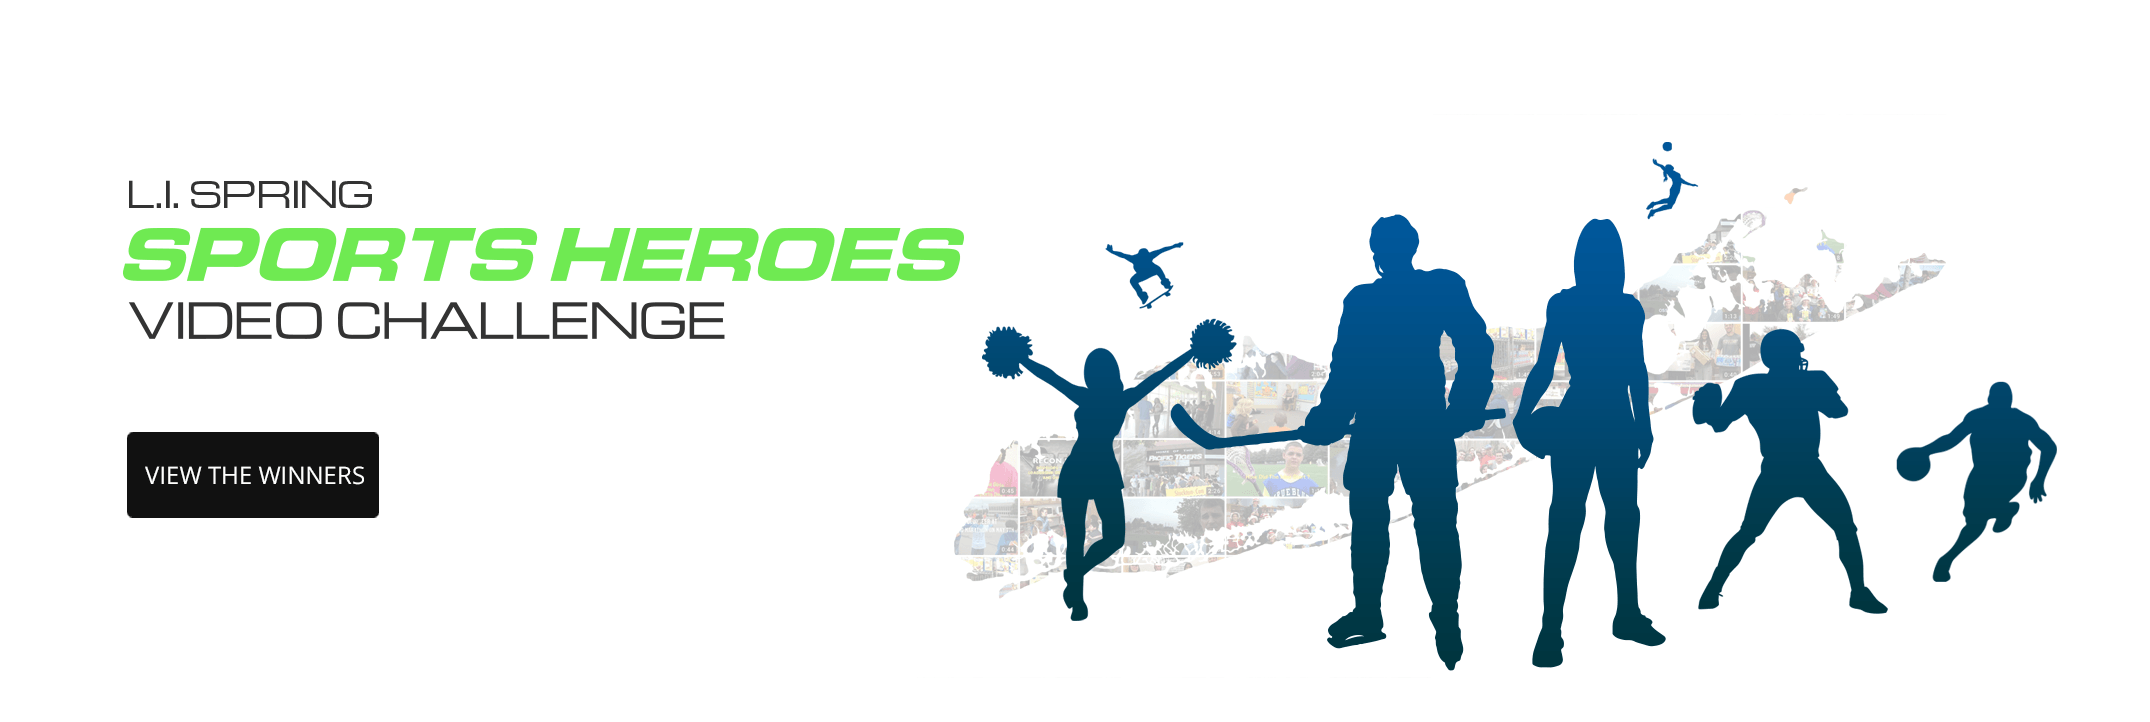 Spring Sports Heroes Challenge